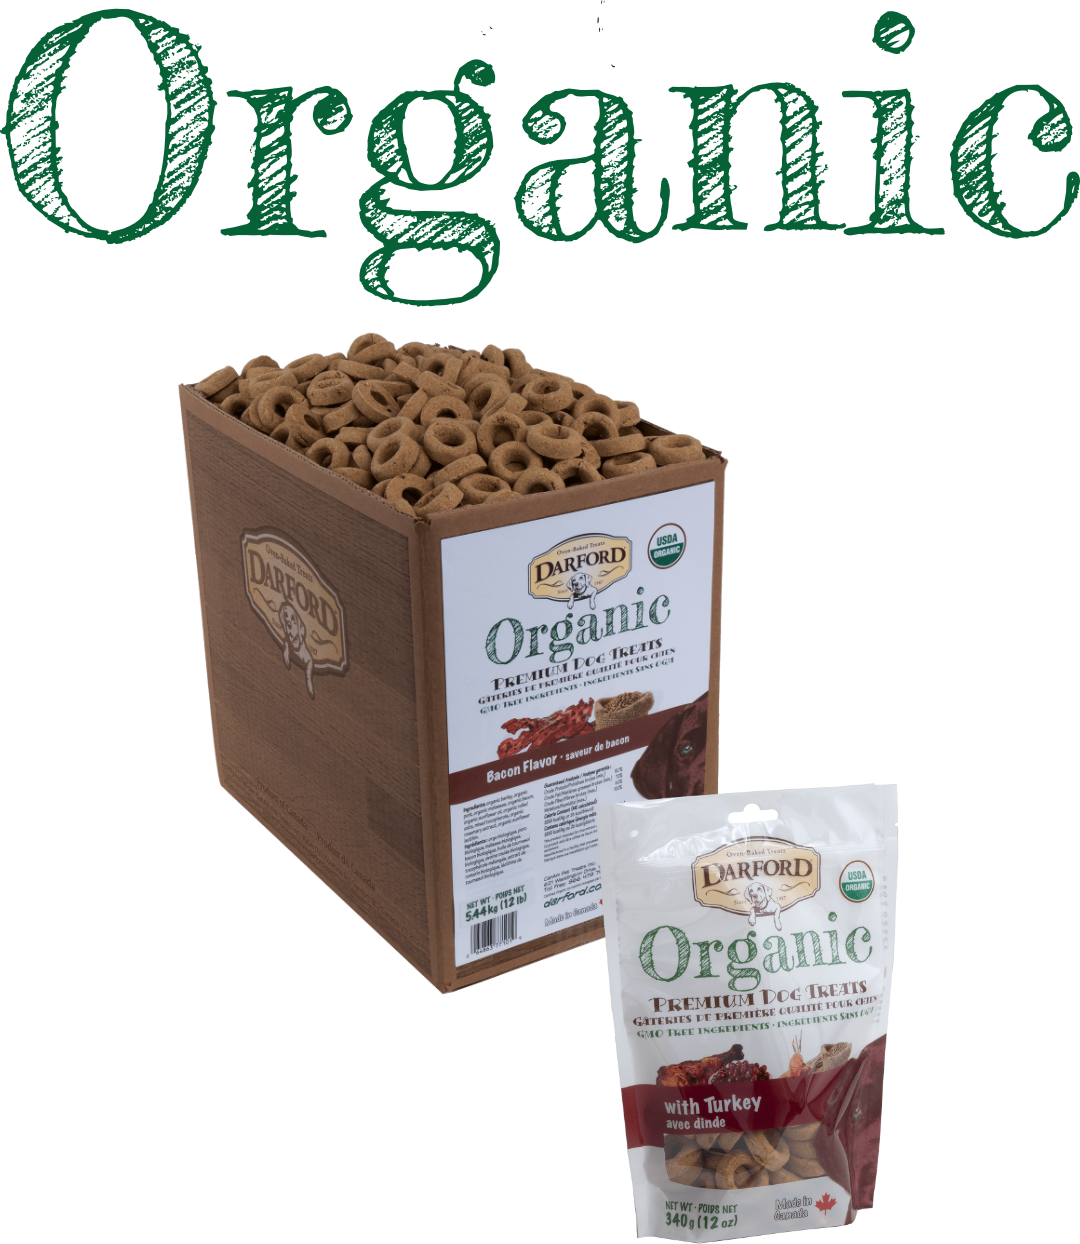 Darford organic dog treats